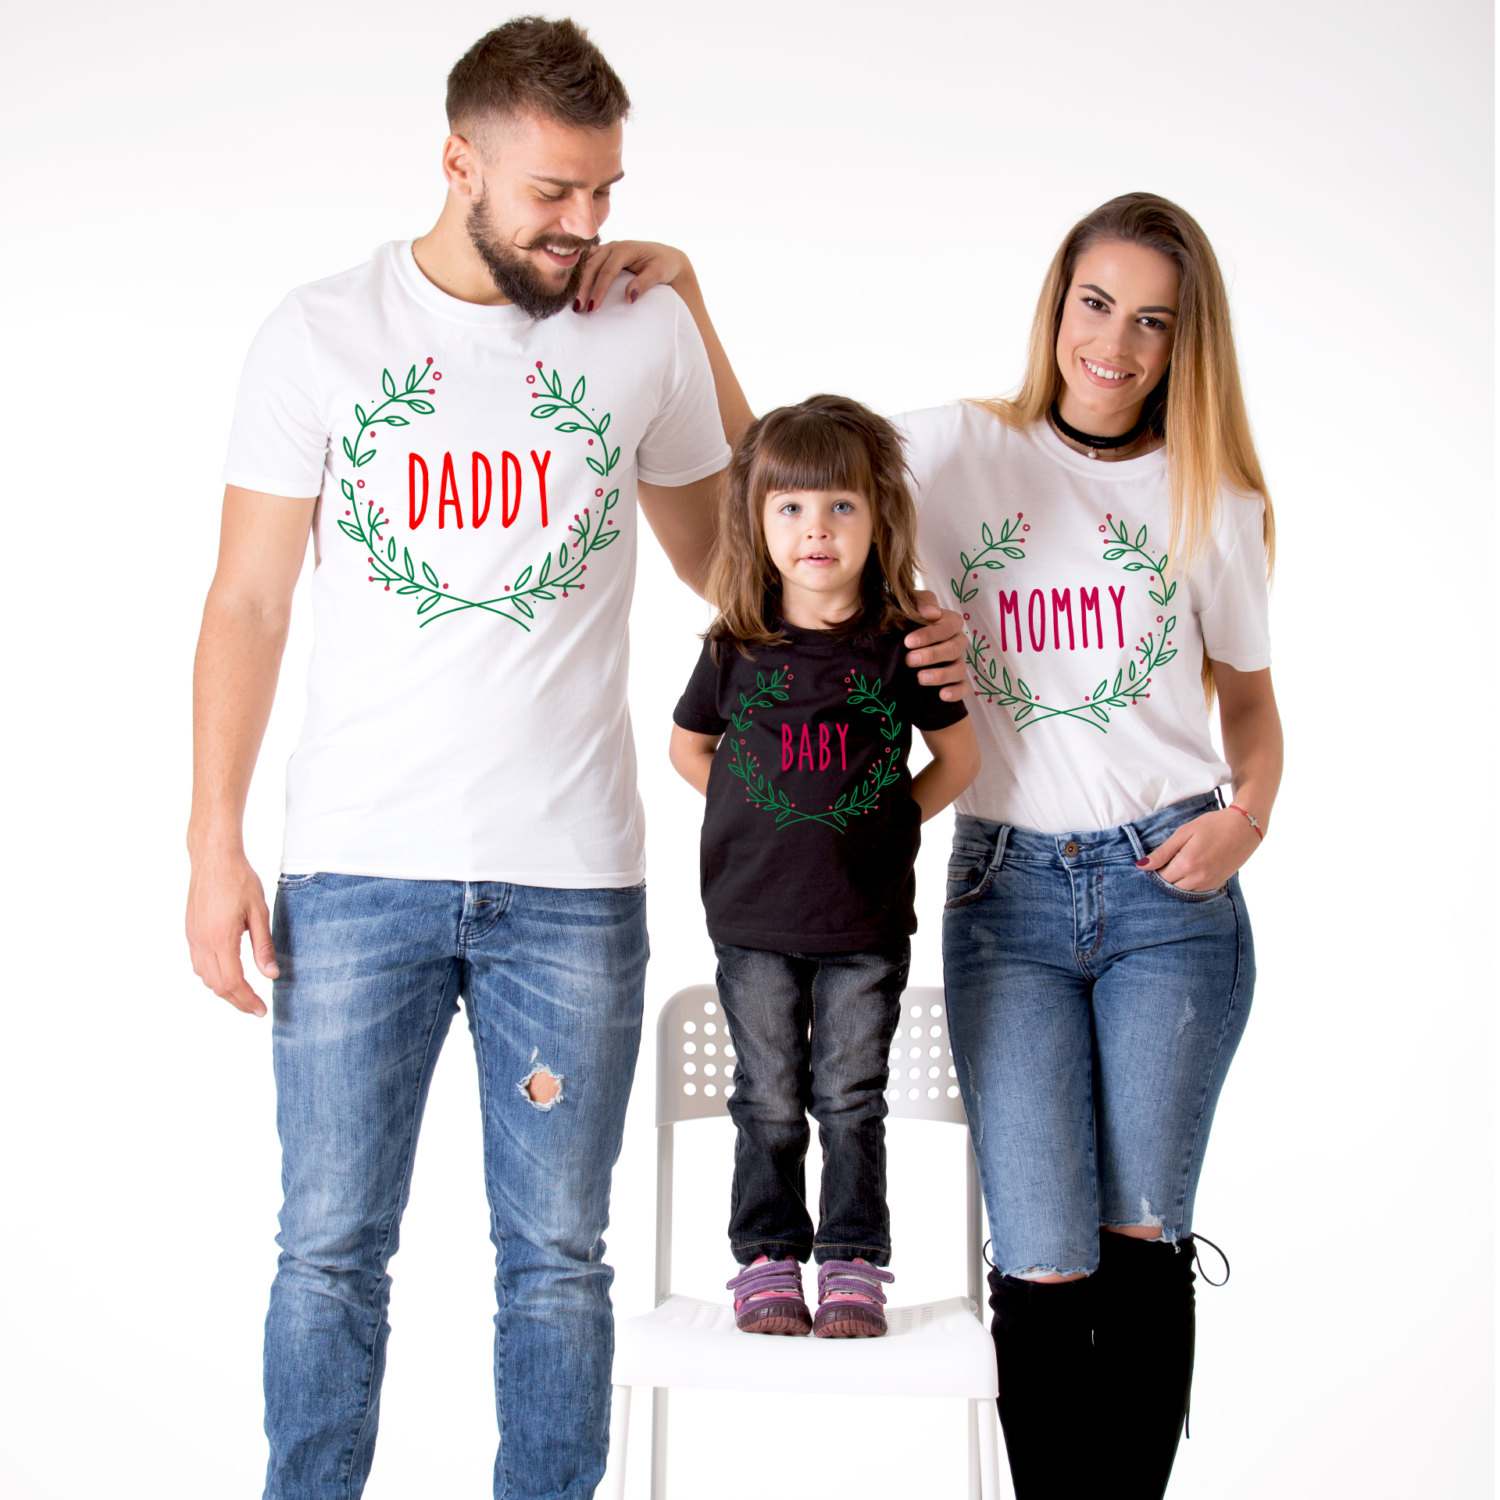 Matching Christmas Shirts For Family.Mommy Daddy Baby Matching Family Christmas Shirts